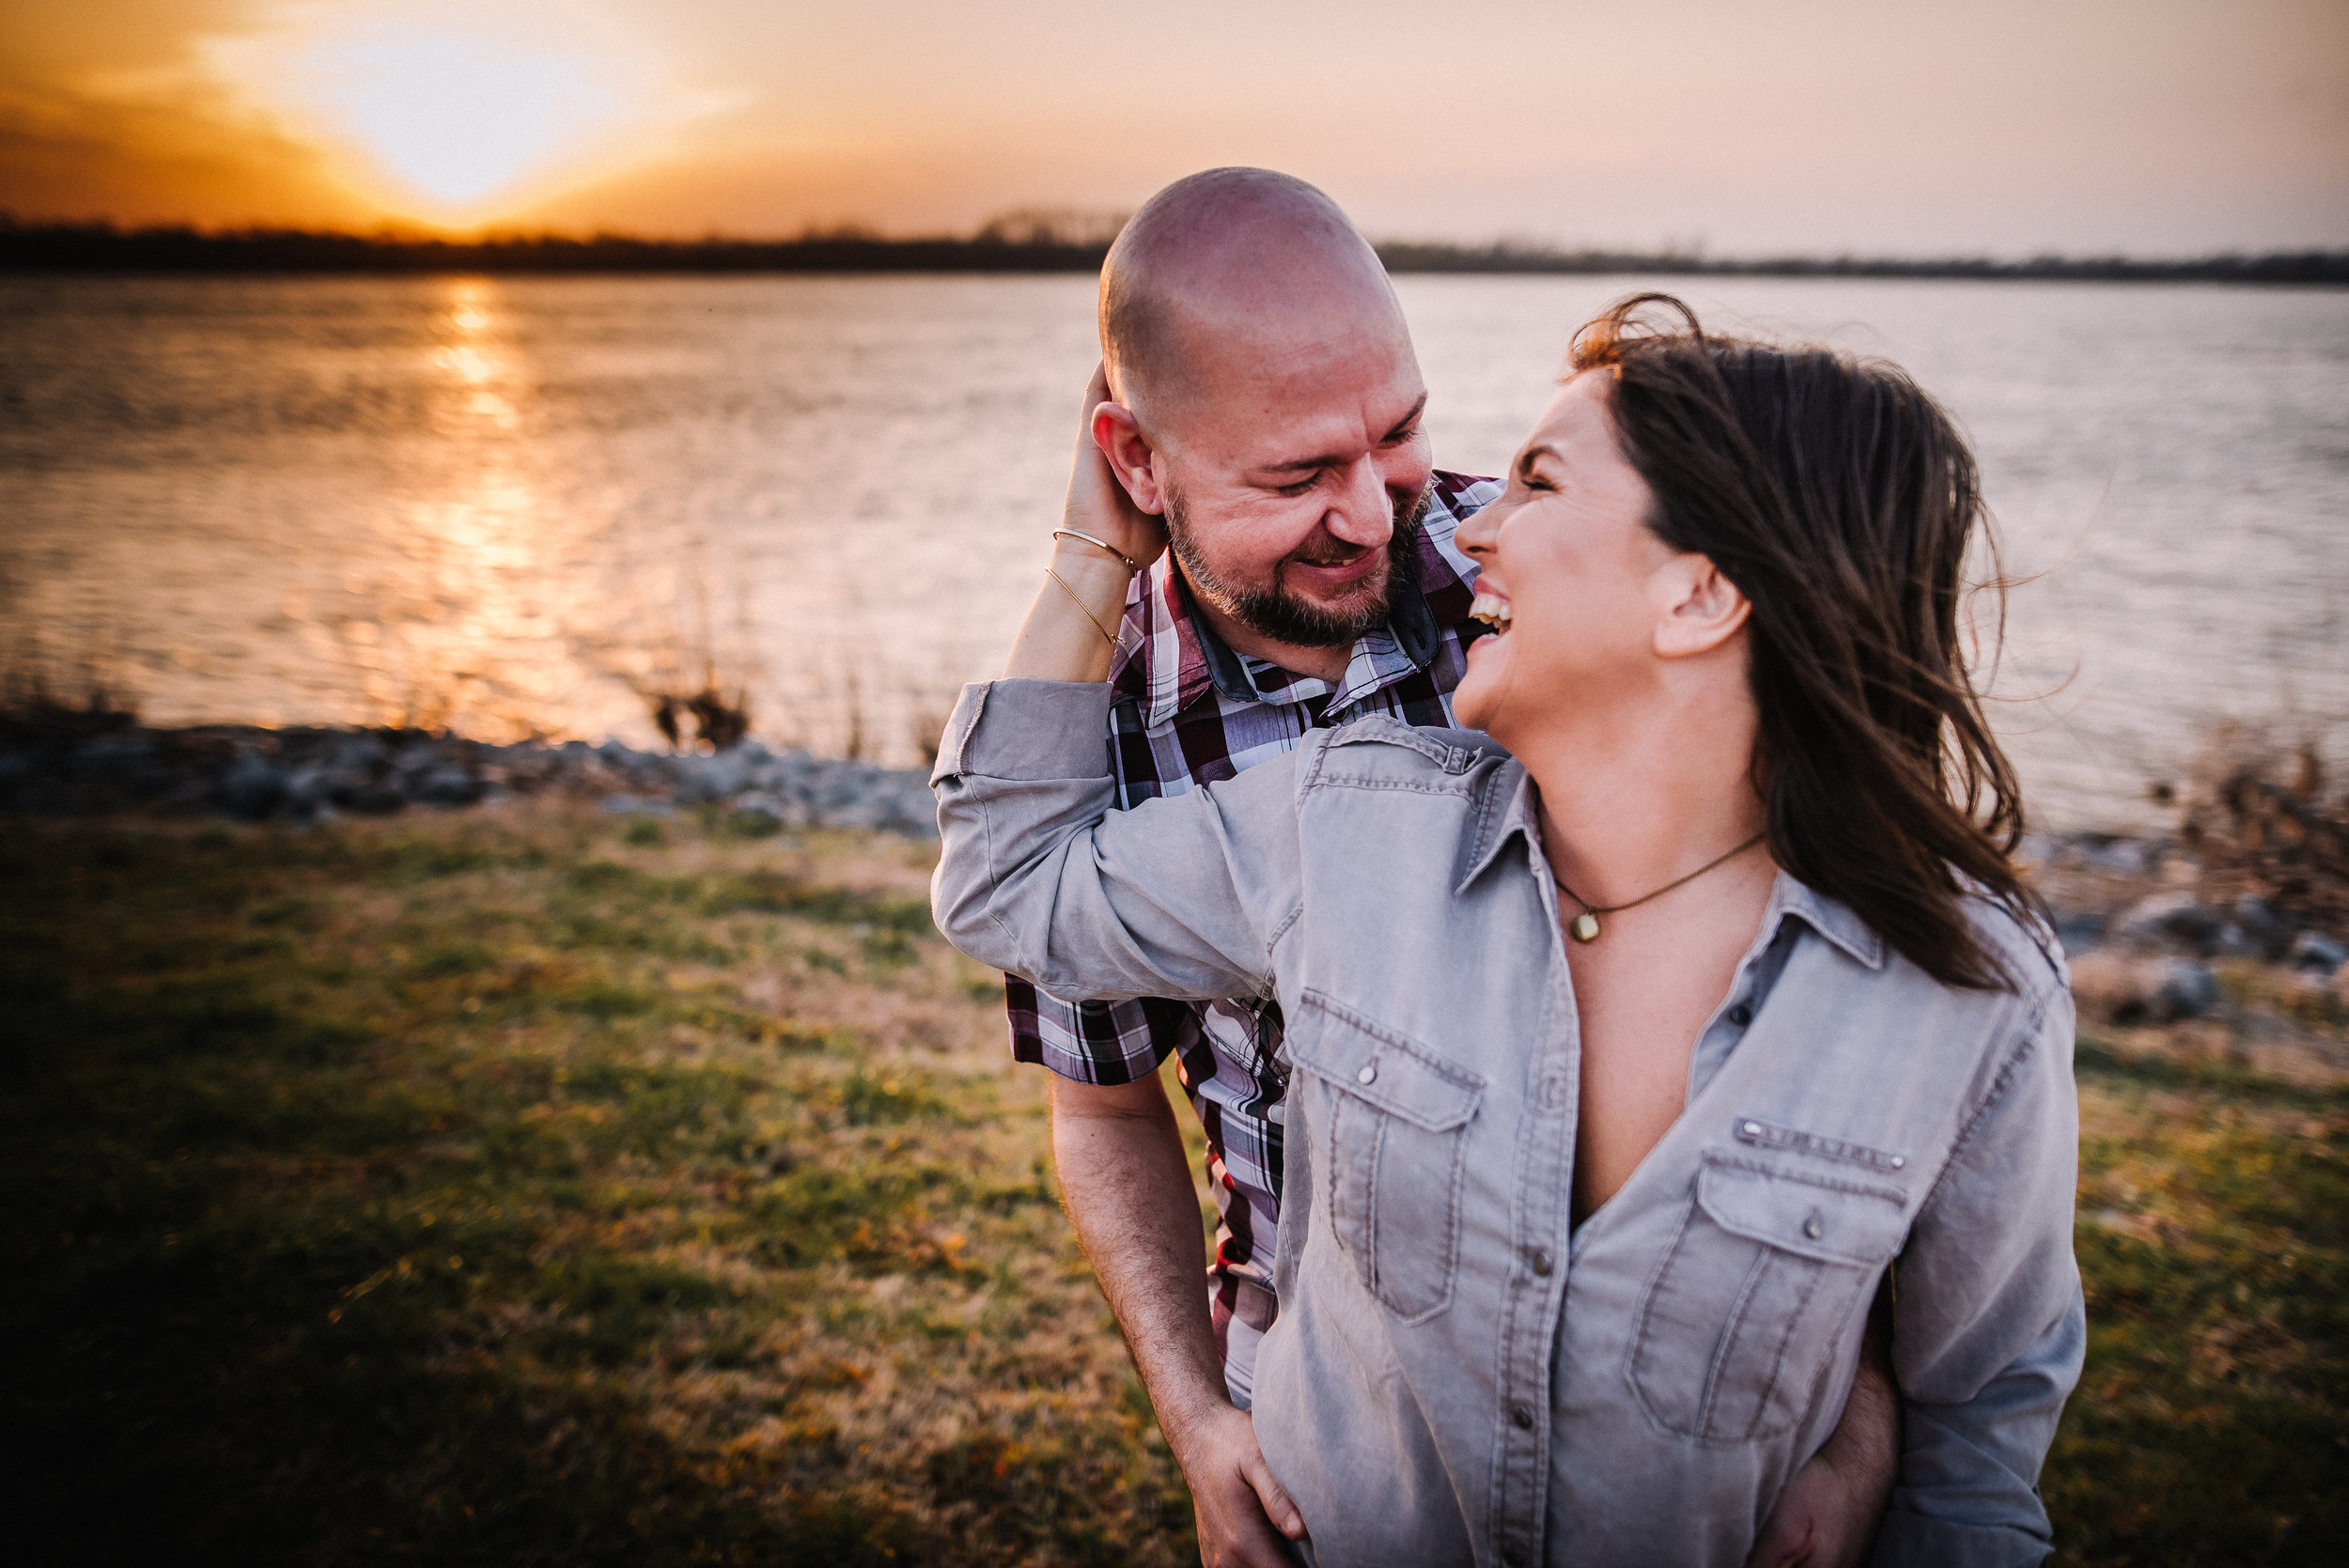 Melissa+Andy_Downtown-Memphis-Engagement-Session_Ashley-Benham-Photography-5447.jpg